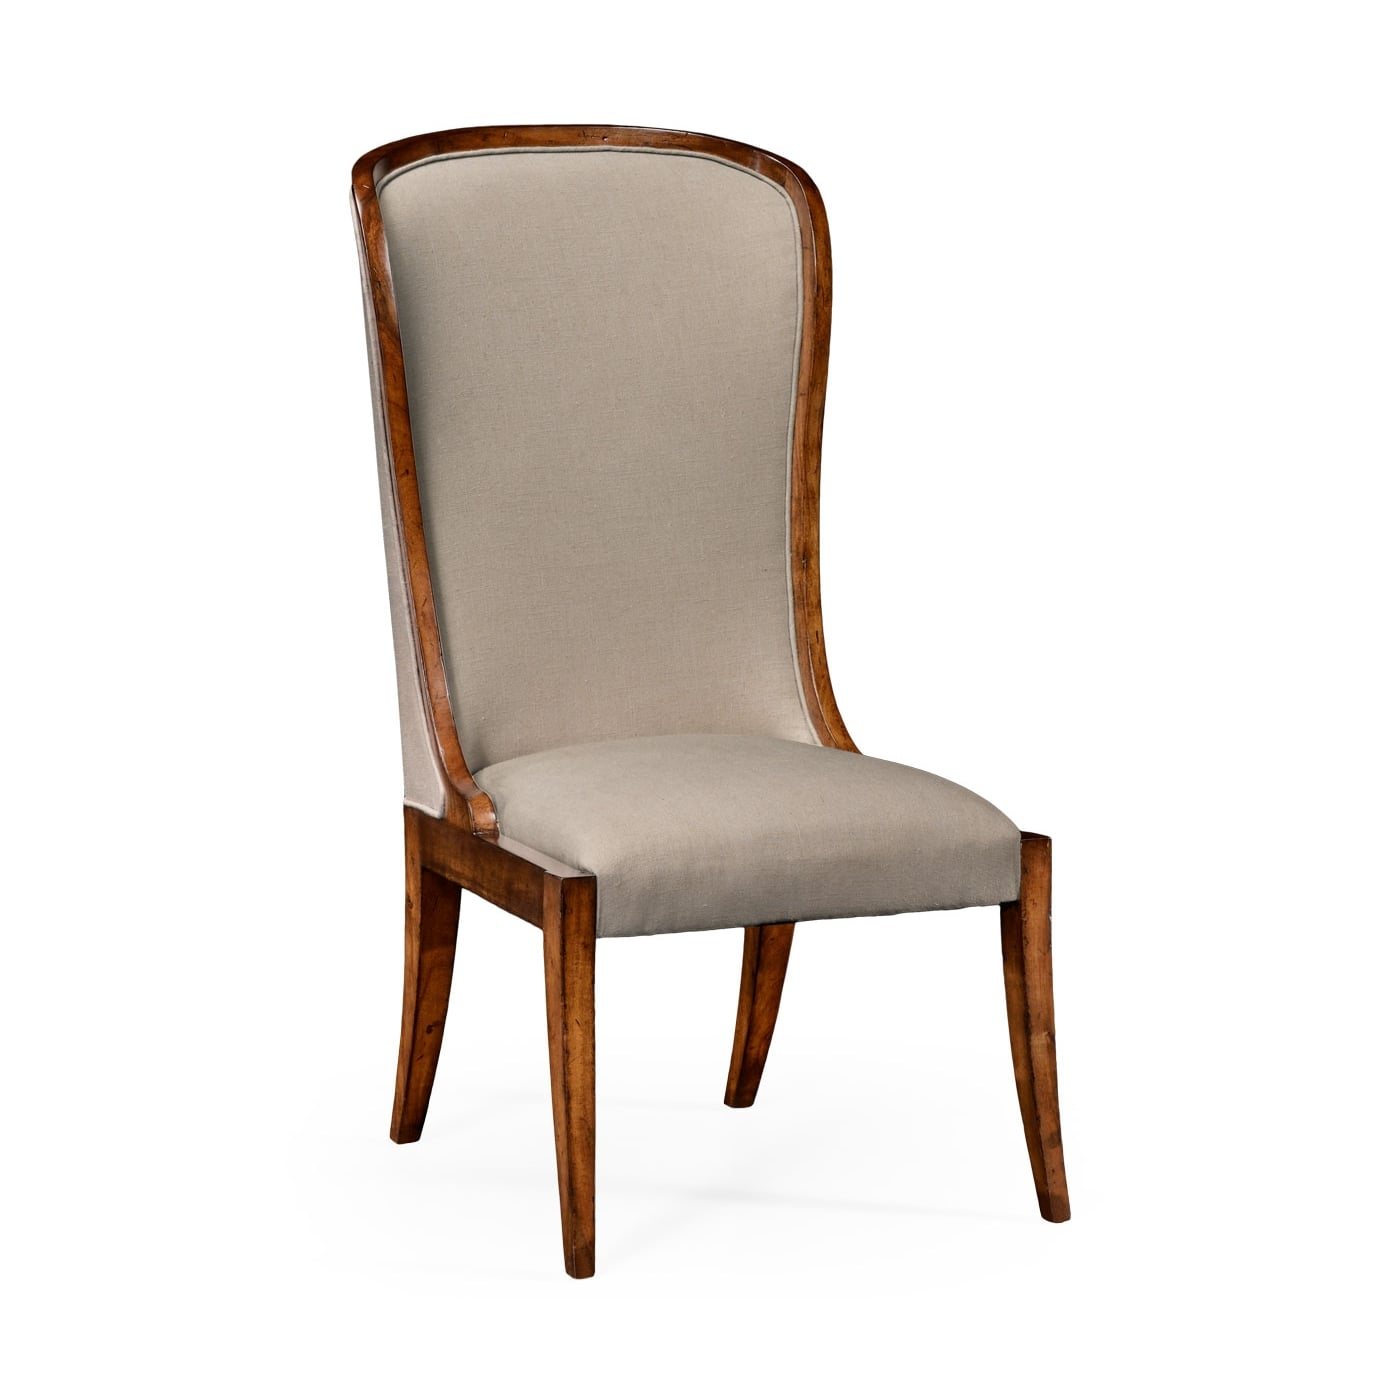 High Back Upholstered Dining Chair  Swanky Interiors